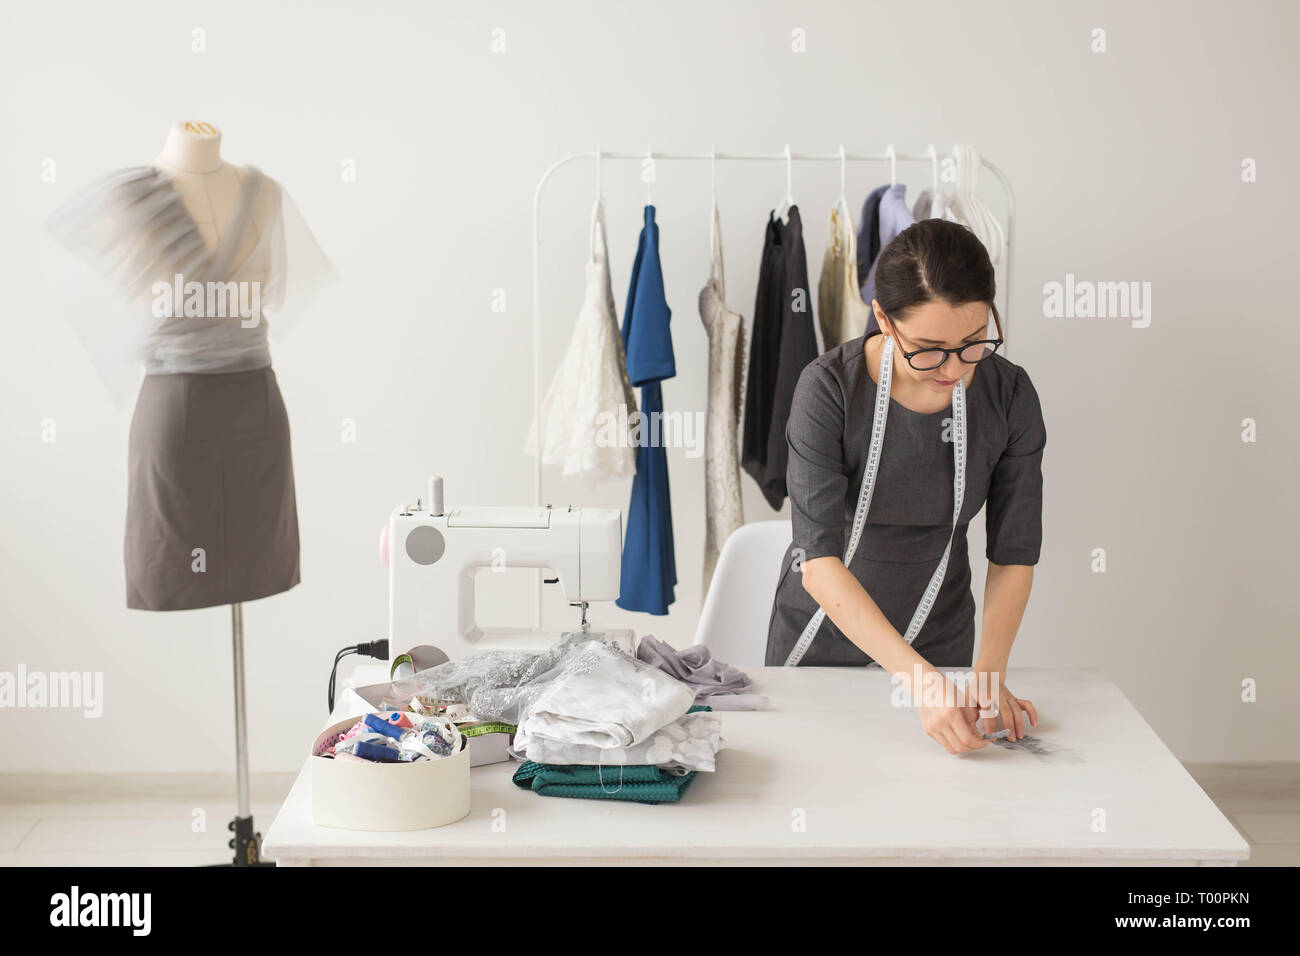 Dressmaker Fashion Designer And Tailor Concept Young Woman Designer Process Of Creating A Dress Stock Photo Alamy